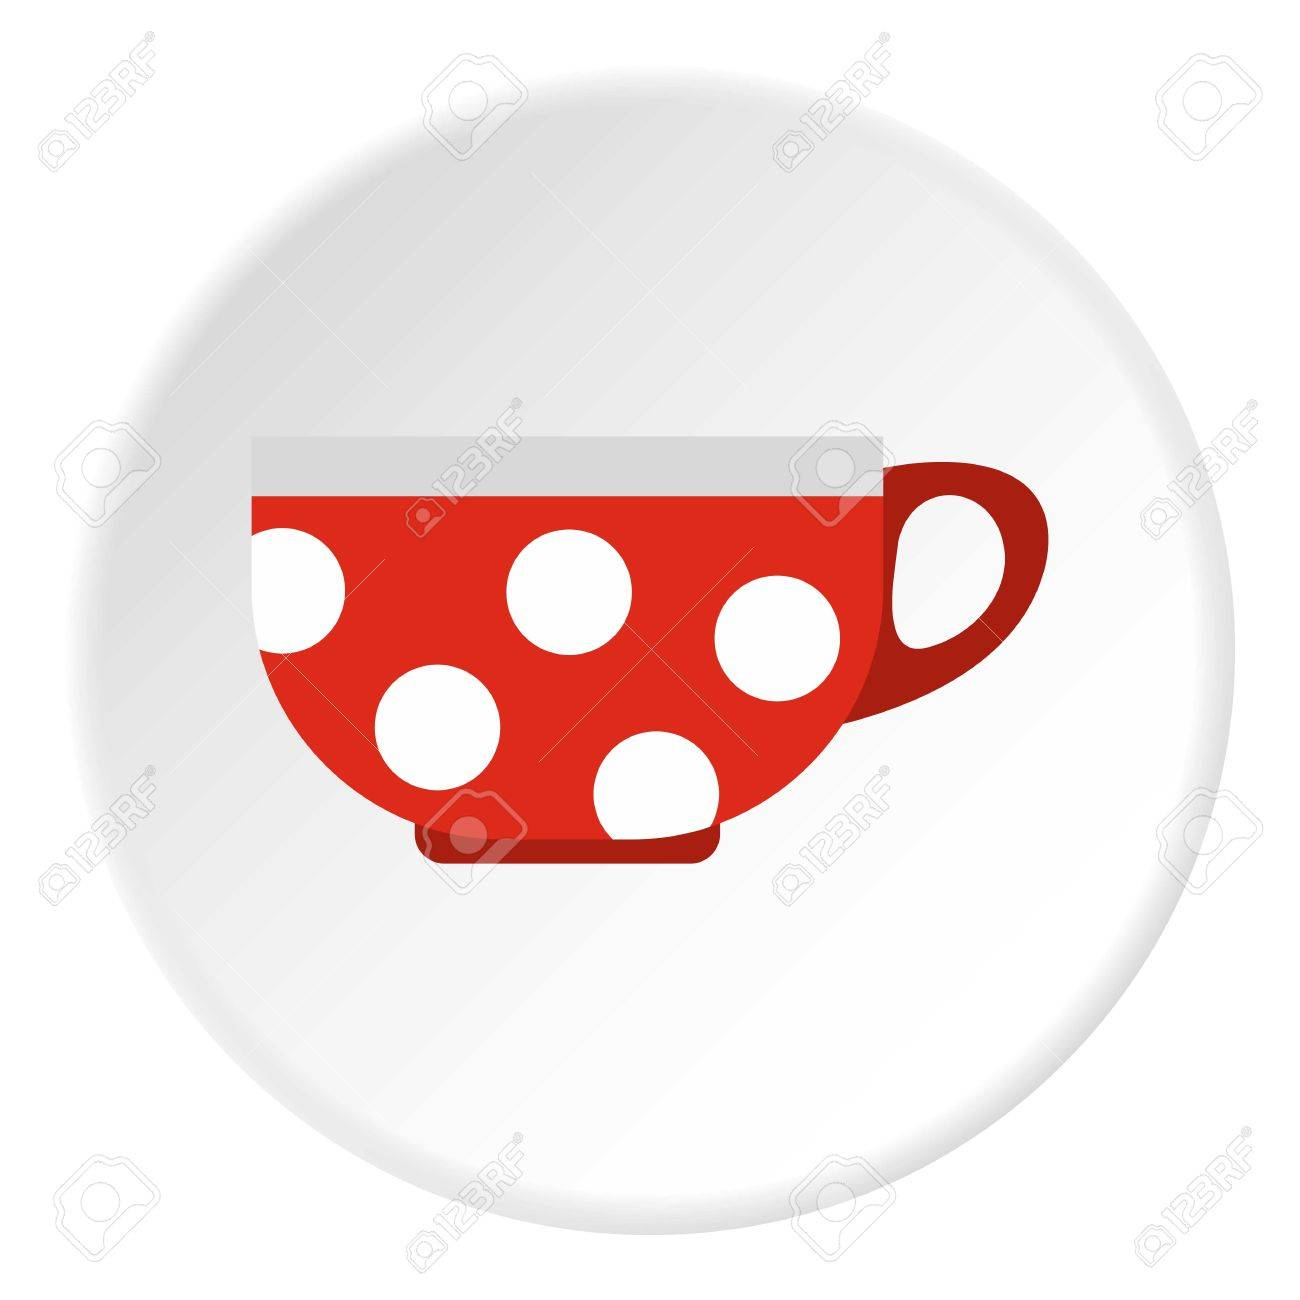 Red Mug With White Polka Dots Icon. Flat Illustration Of Red ...